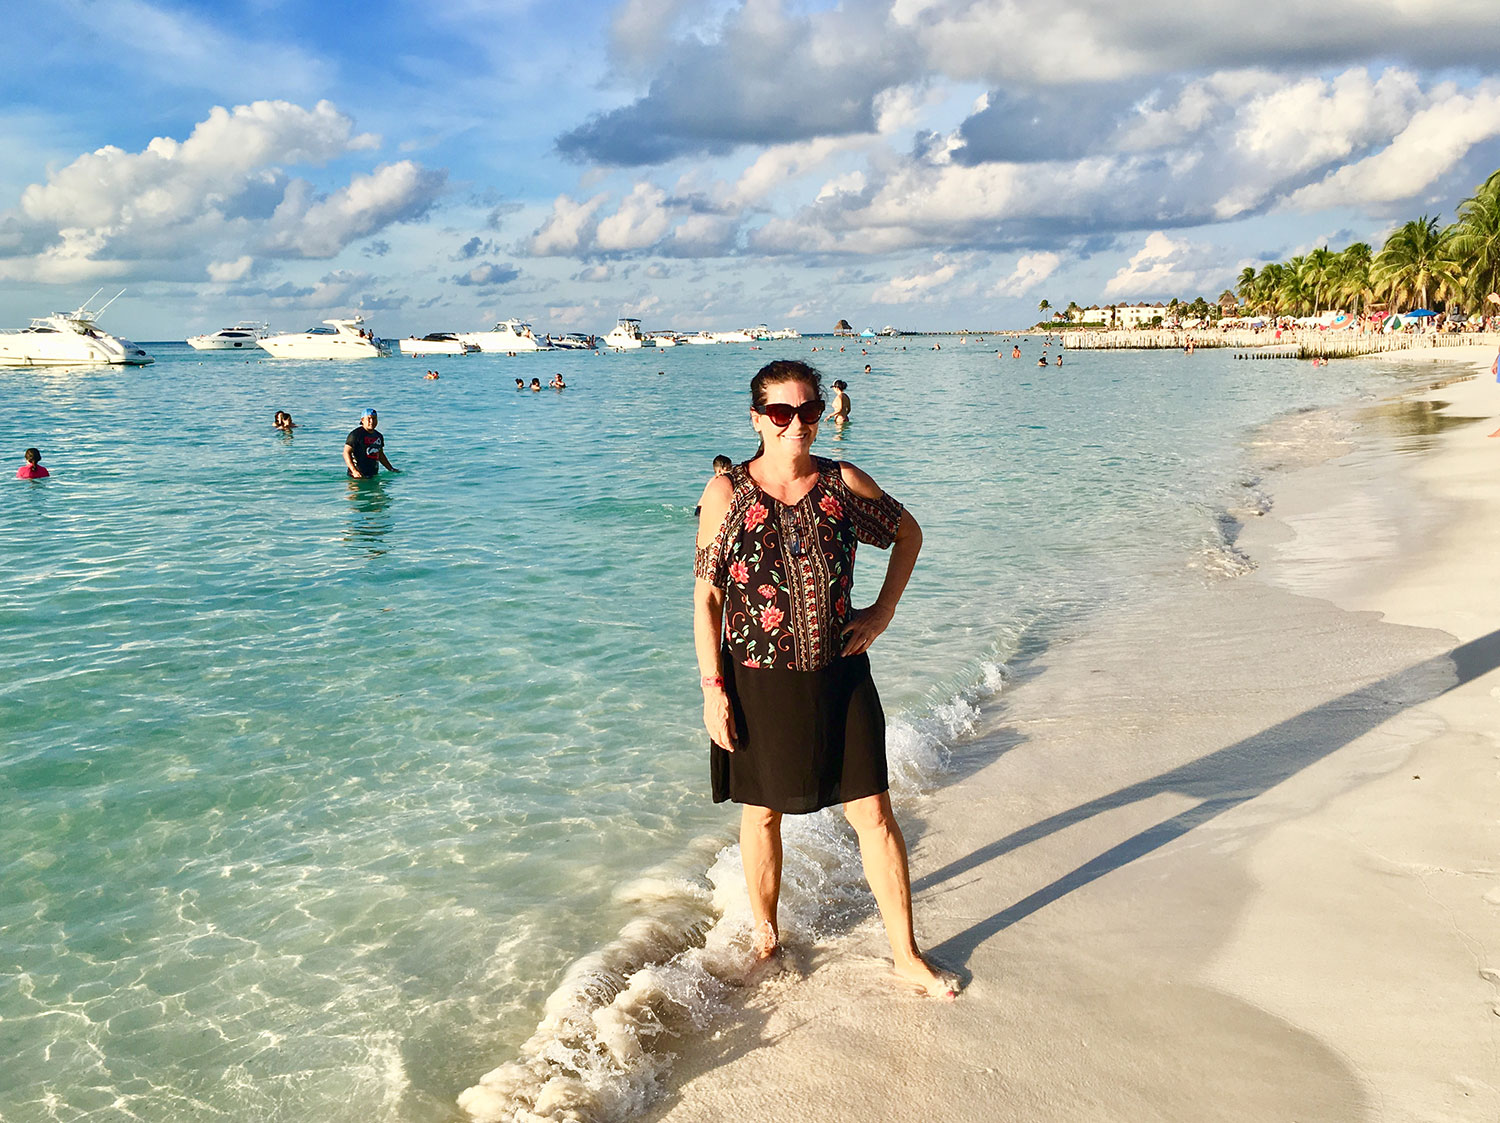 North Beach on Isla Mujeres, 2018.